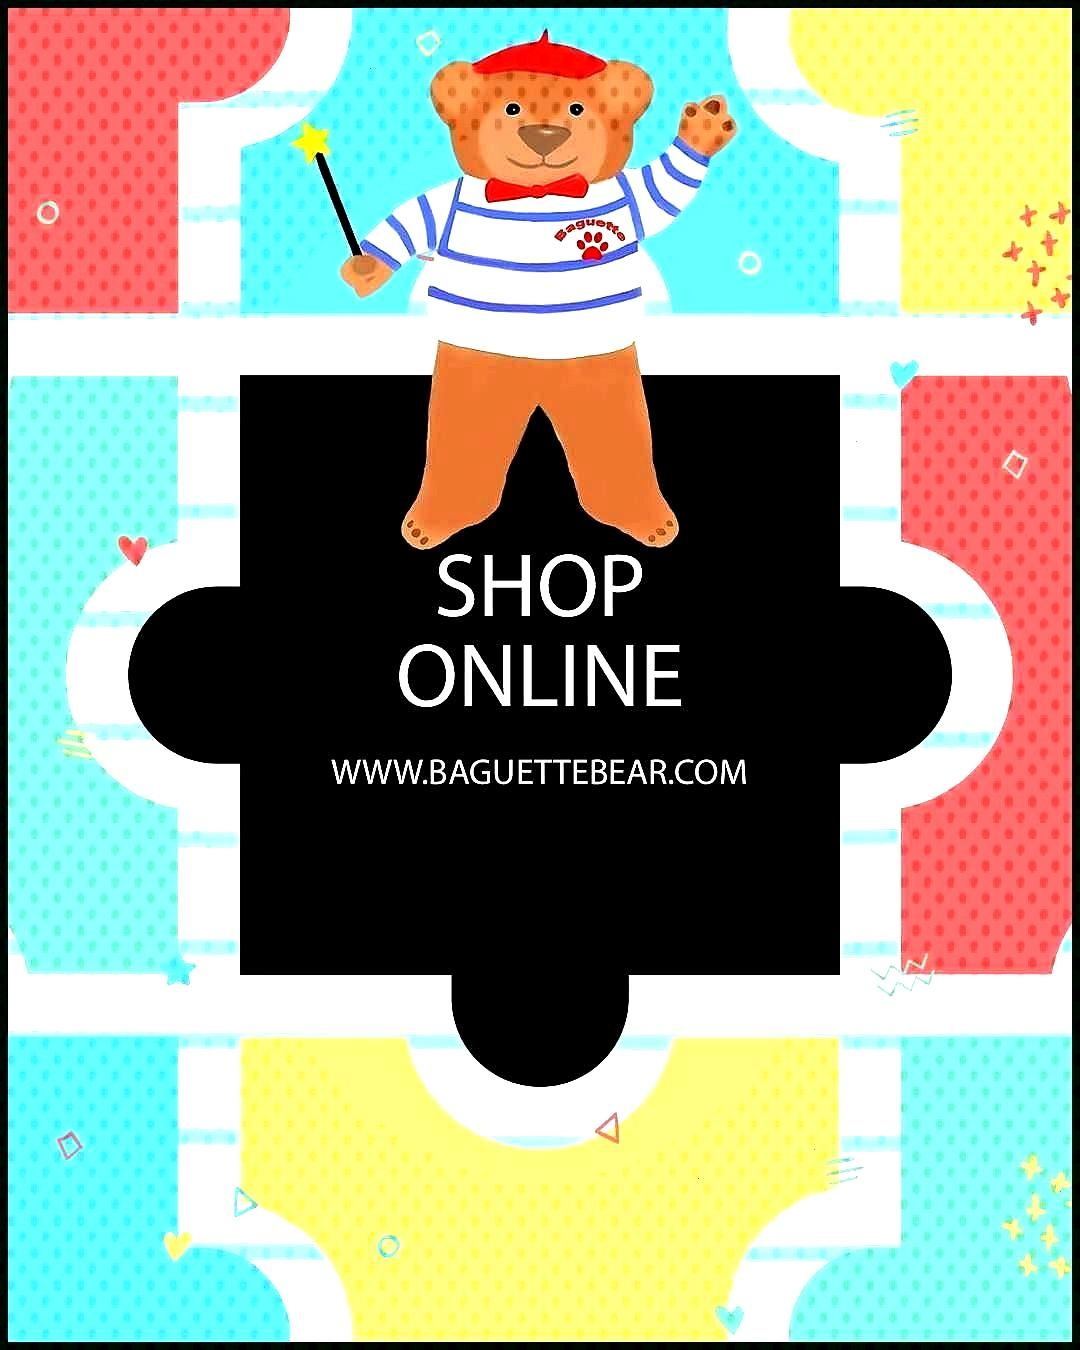 many great offers in Bagutte Bears store Get your child a gift that is both fun and educational th